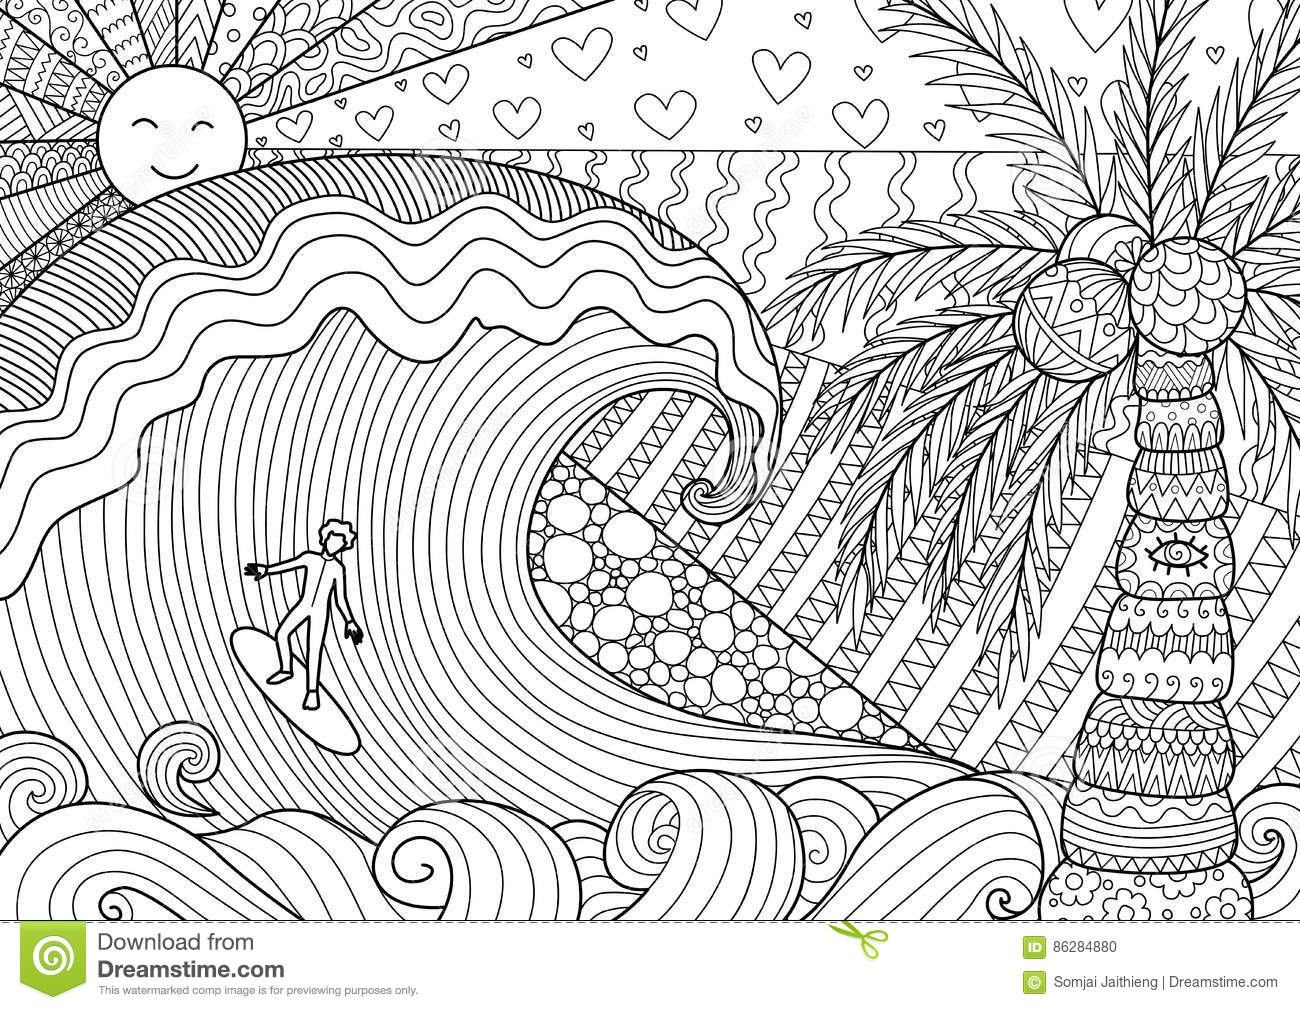 A man surfing on big wave for adult coloring book for anti stress